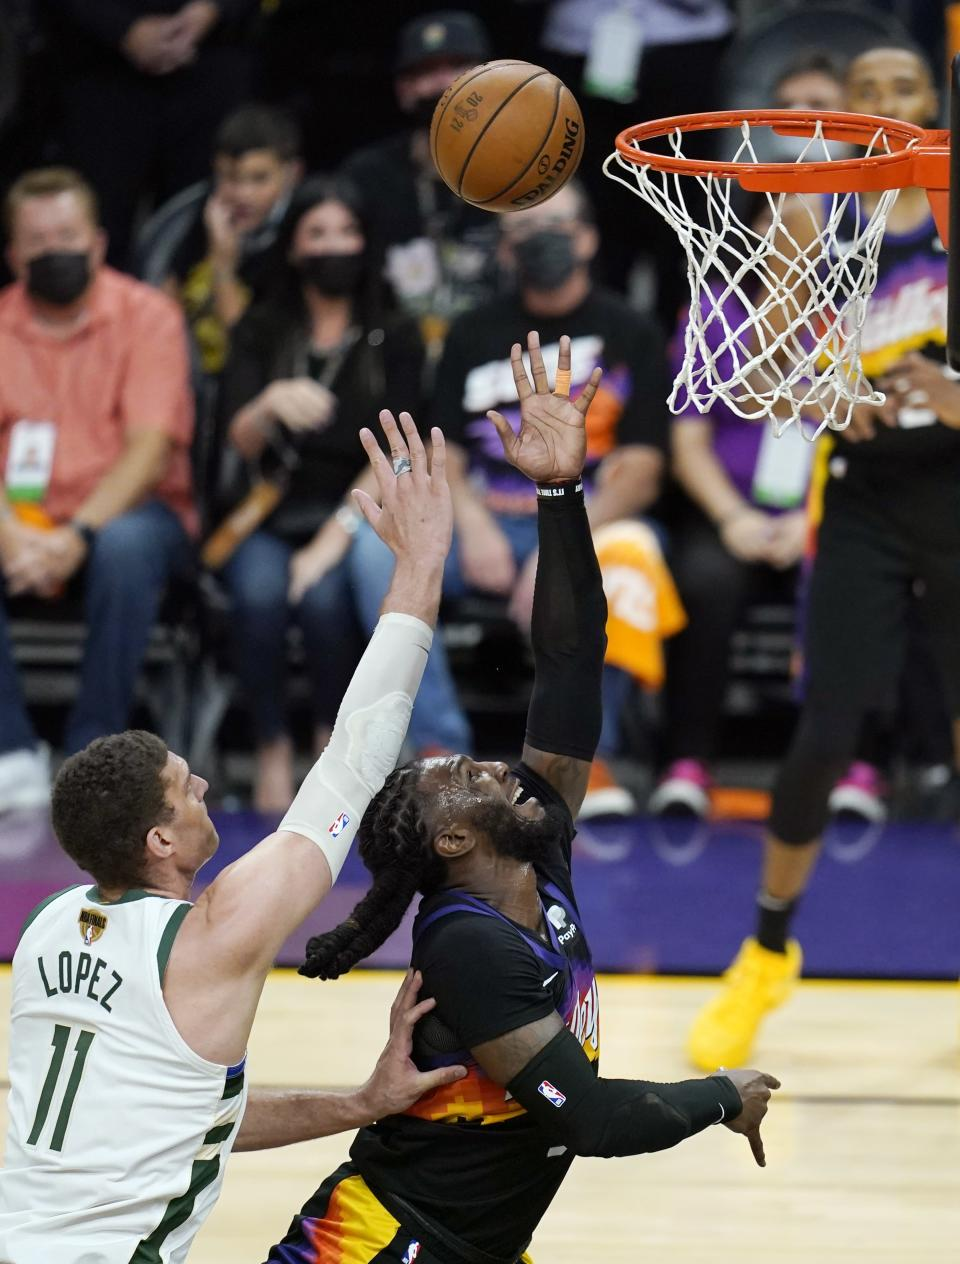 Phoenix Suns forward Jae Crowder, right, gets off a shot as Milwaukee Bucks center Brook Lopez (11) defends during the second half of Game 1 of basketball's NBA Finals, Tuesday, July 6, 2021, in Phoenix. (AP Photo/Ross D. Franklin)